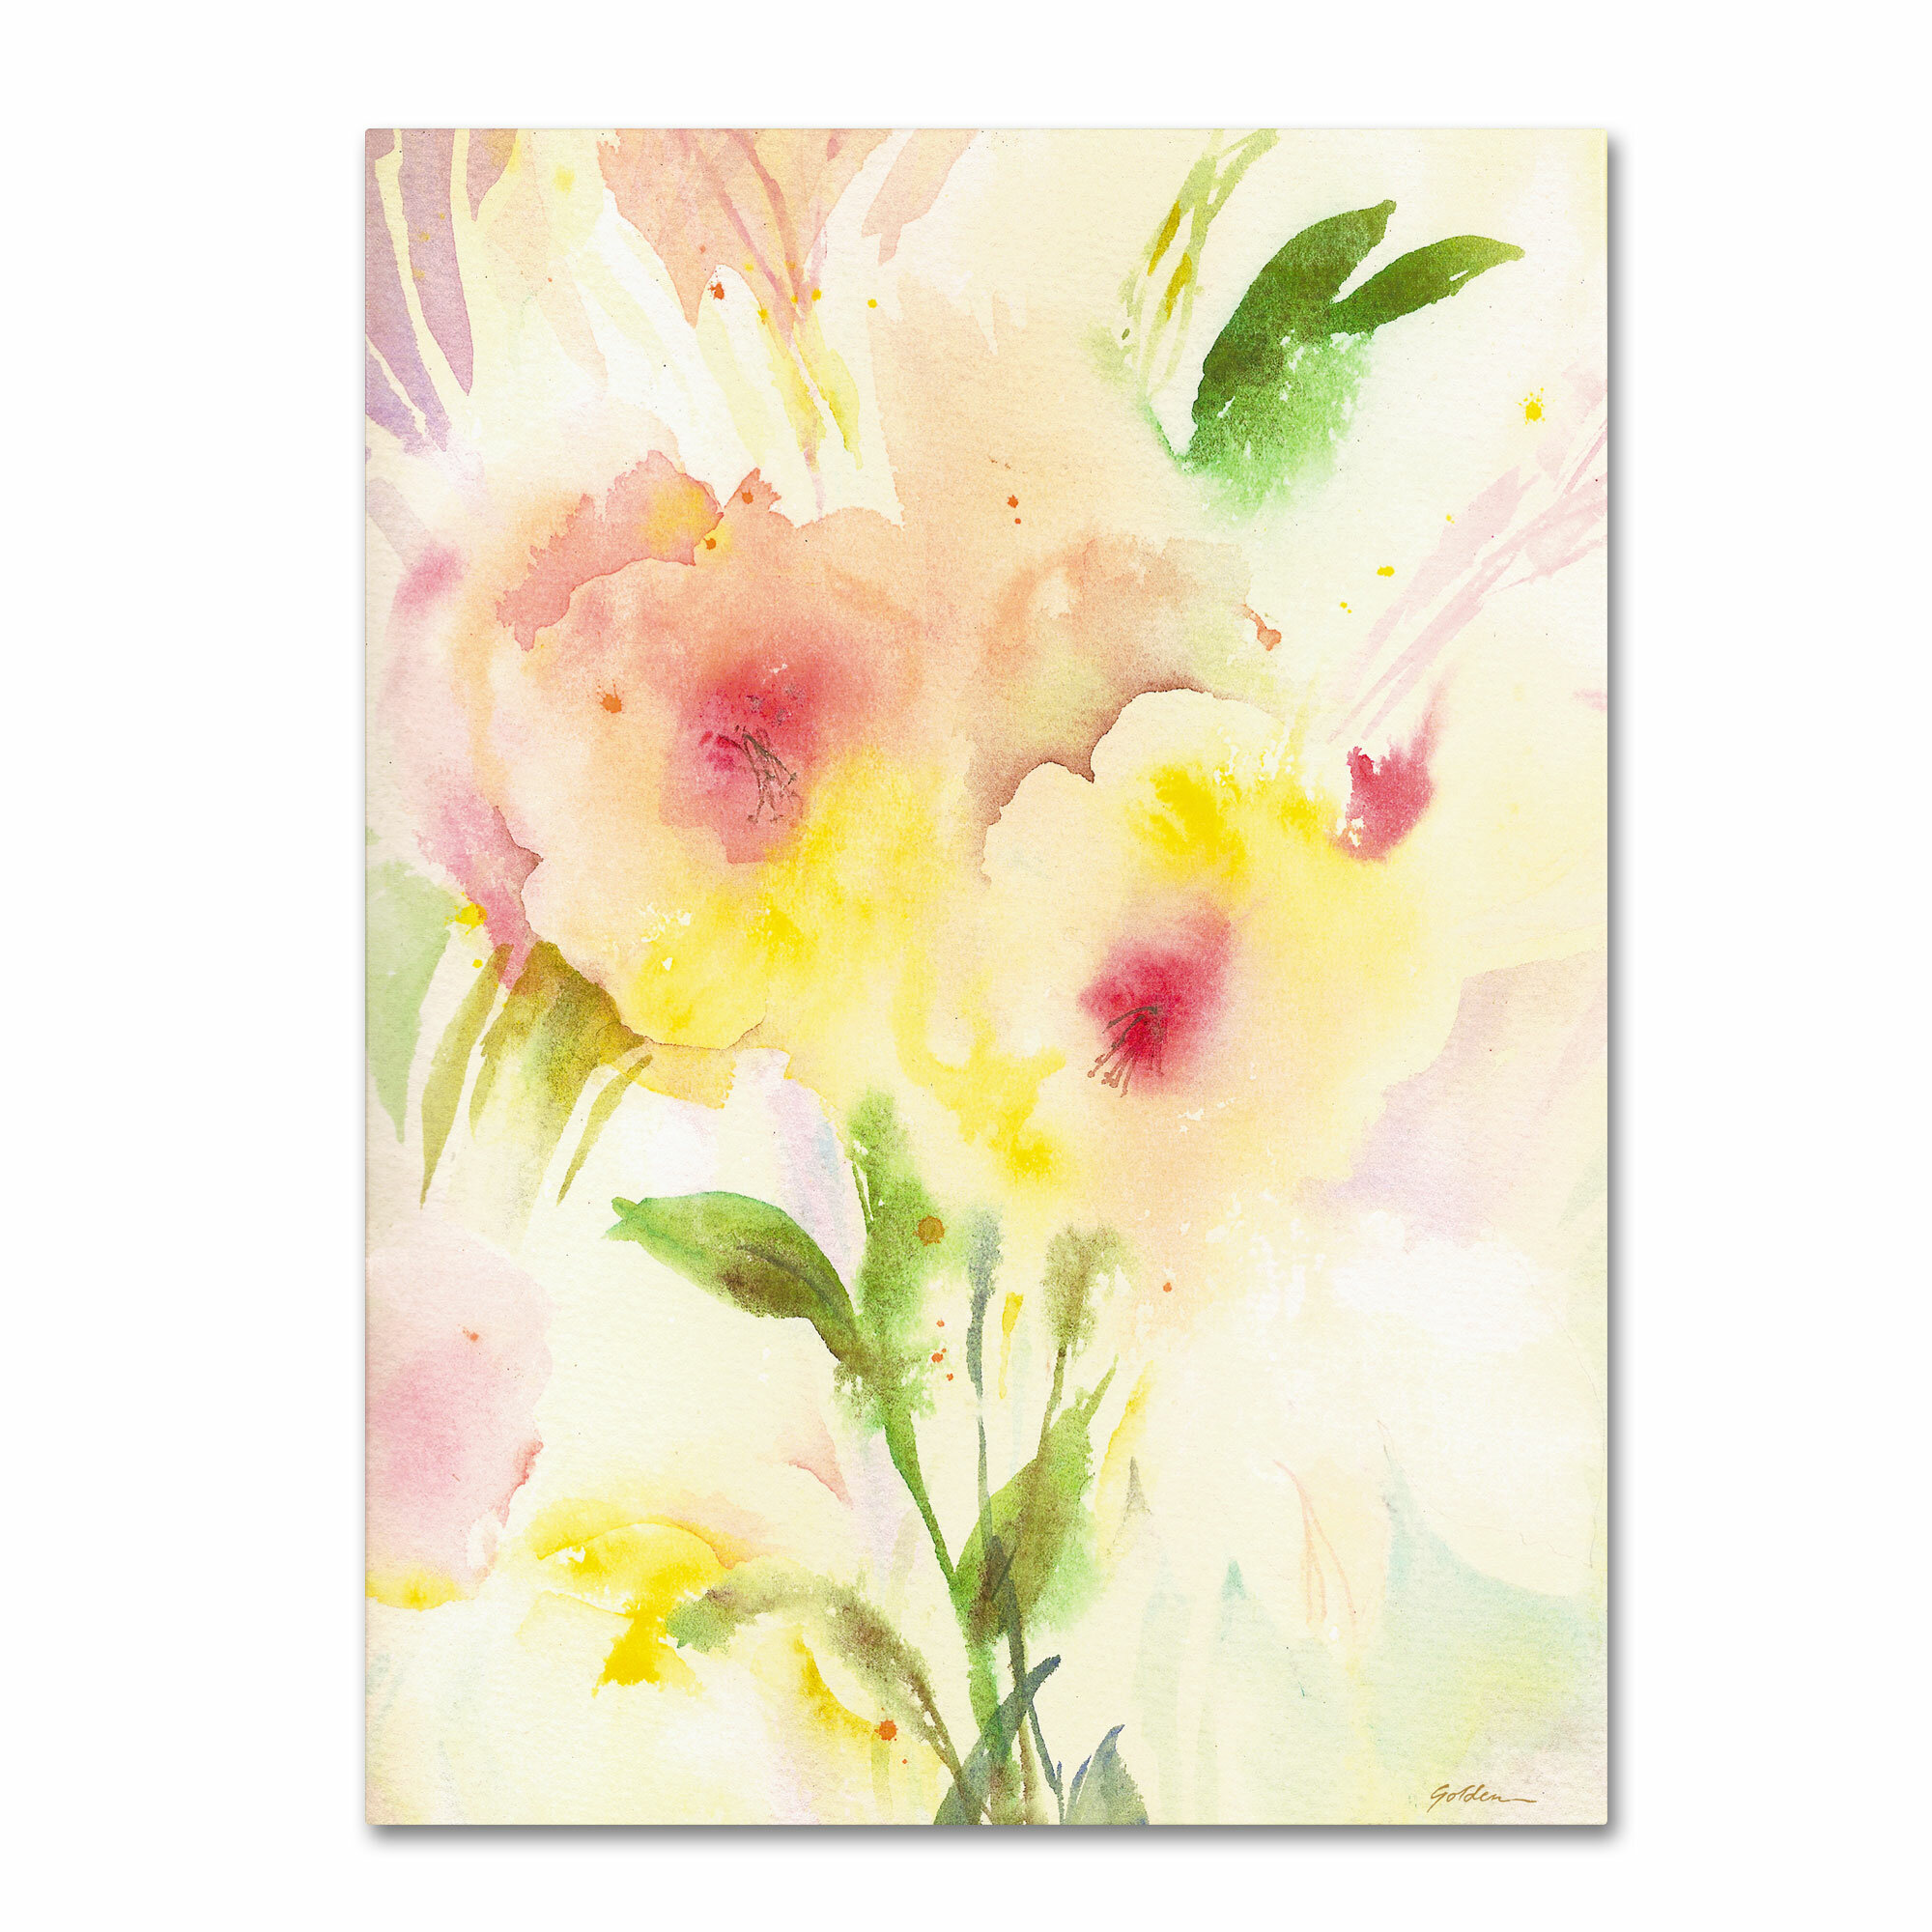 Trademark Art Two Garden Flowers Painting Print On Wrapped Canvas Wayfair